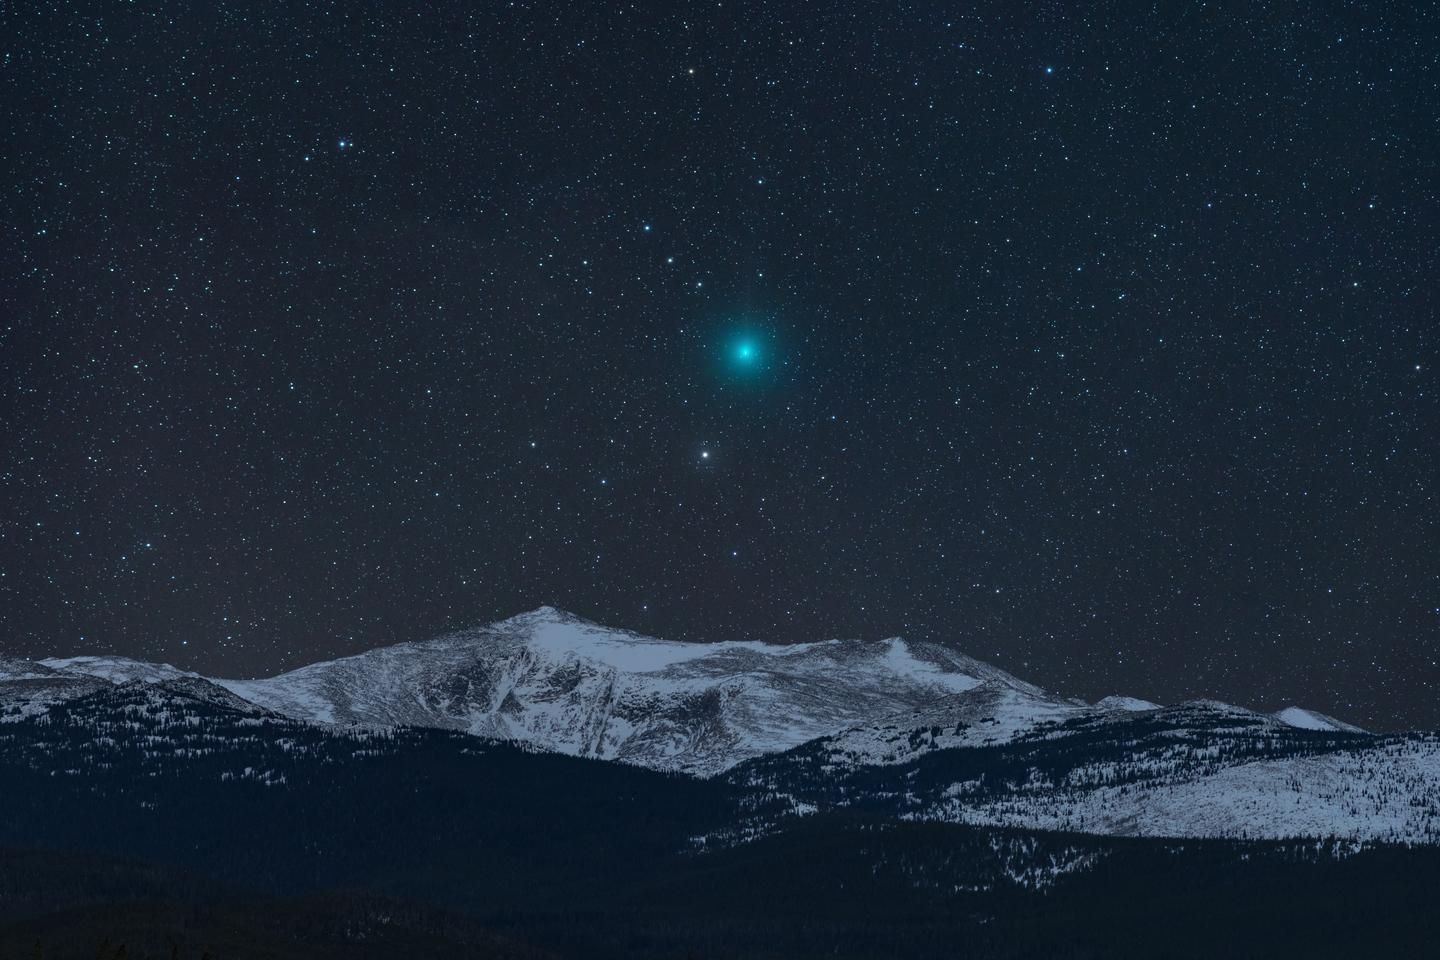 The photographer has been wanting to get an image like this for years, but bright comets have been lacking. Then along came 46P/Wirtanen. The photographer used software to simulate the view and it showed that the comet would set over Loaf Mountain in the Bighorns at 3 a.m. on that particular night in early December. These mountains are often too windy for long exposures, but everything came together. Using a tracking mount, the photographer shot a 4-panel mosaic of the comet and two additional exposures of the snowy mountain and later combined everything together.Buffalo, Wyoming, USA, 7 December 2018